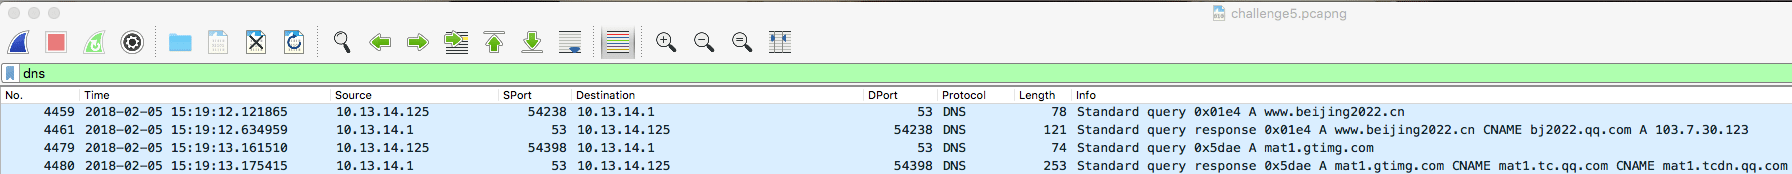 wireshark pcap analysis puzzle 5 dns analysis 3 of 4